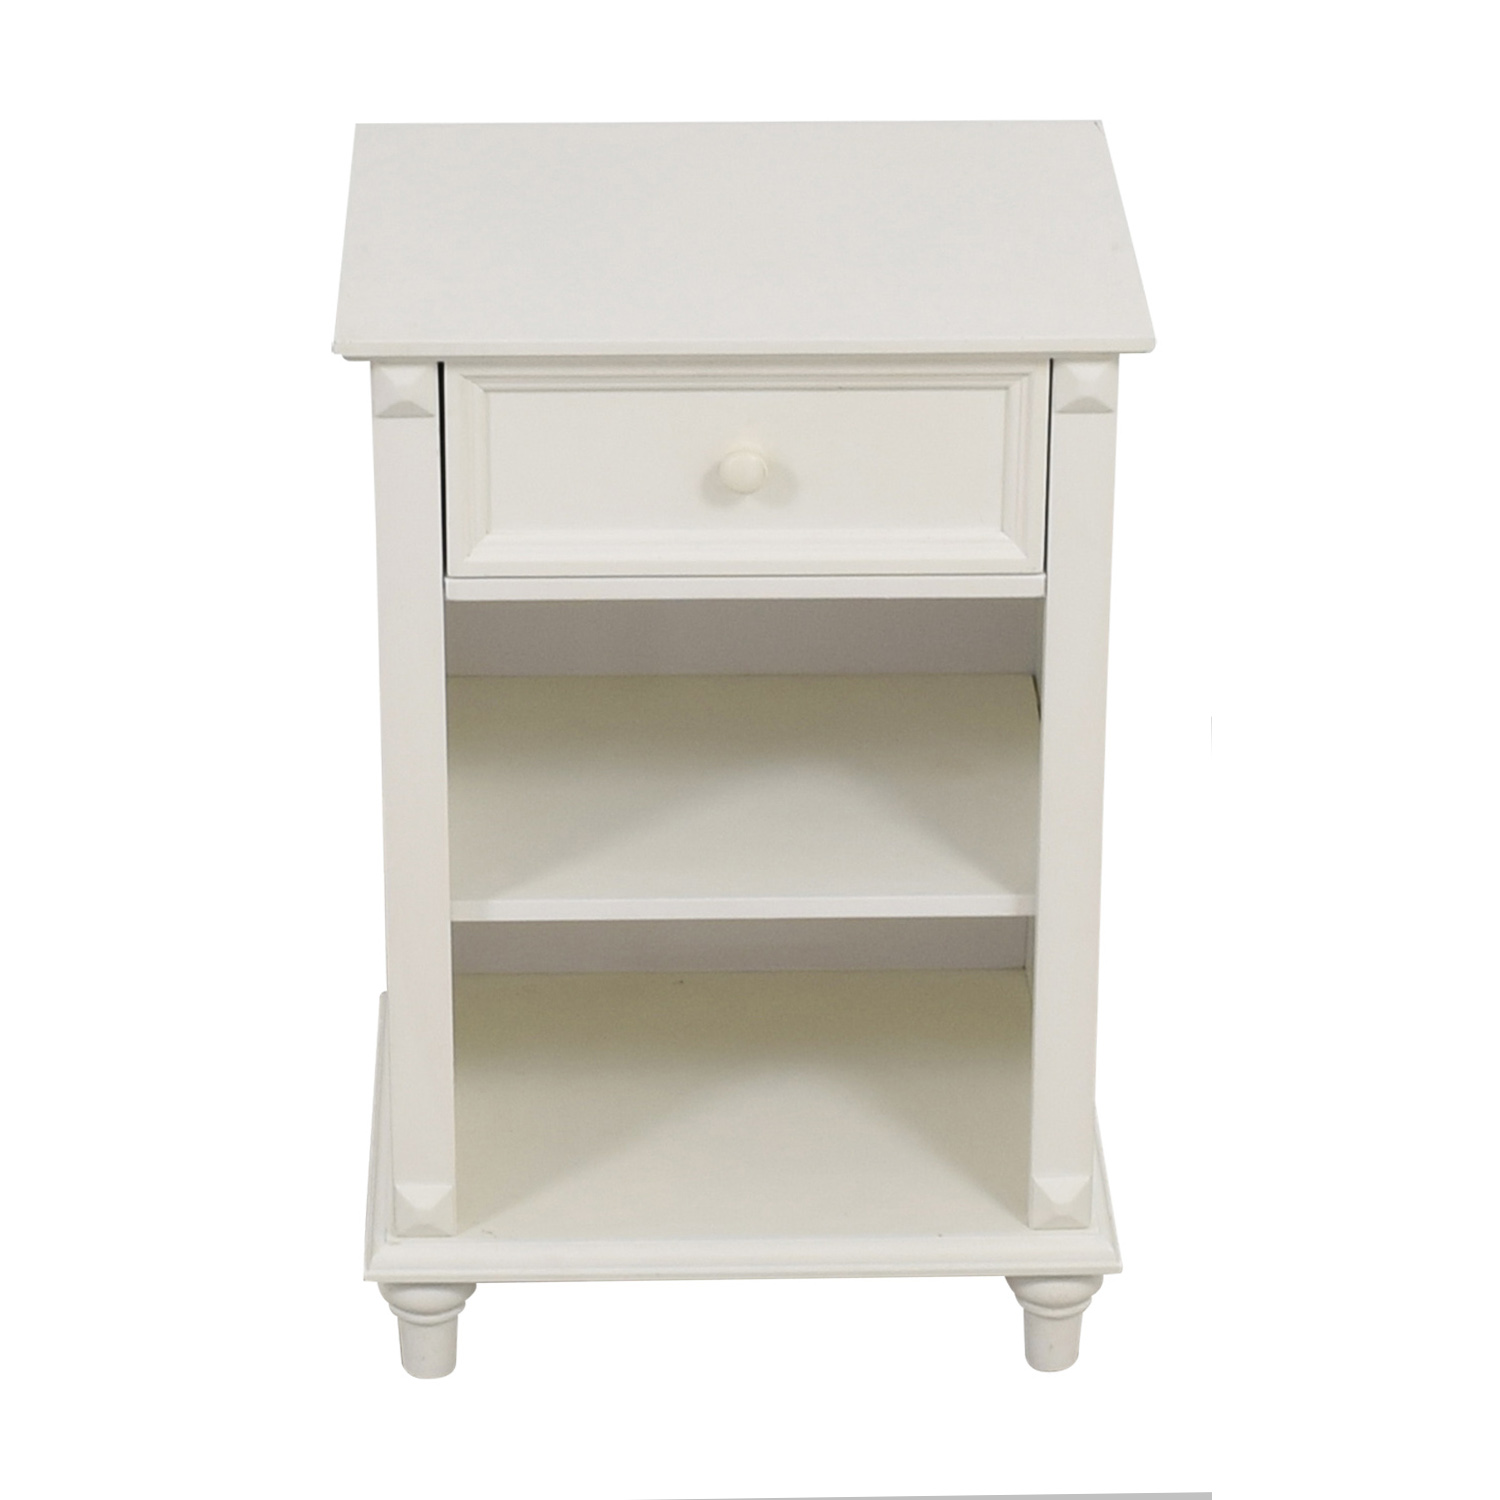 West Elm West Elm White Single Drawer Nightstand for sale